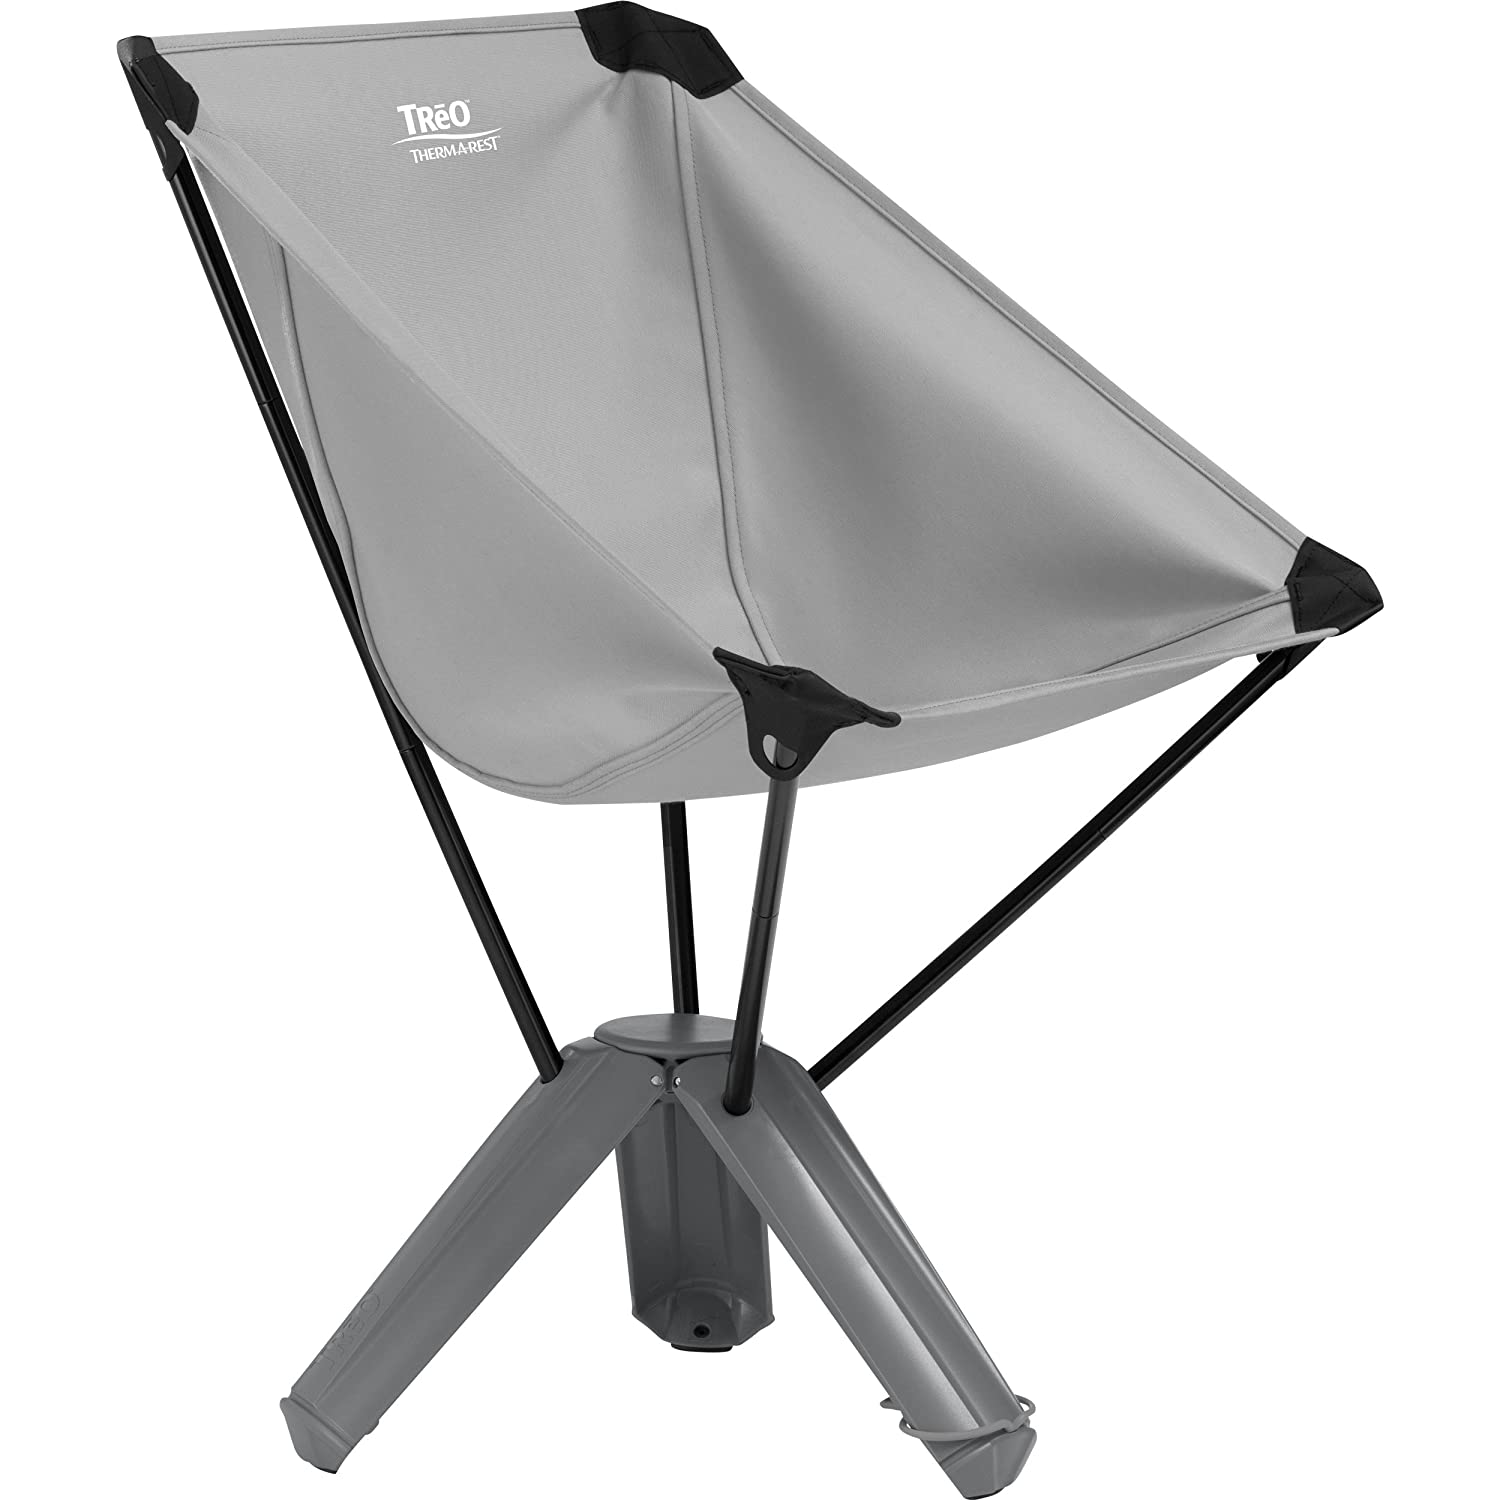 Therm-a-Rest Treo Chair - Campingstuhl/Faltstuhl